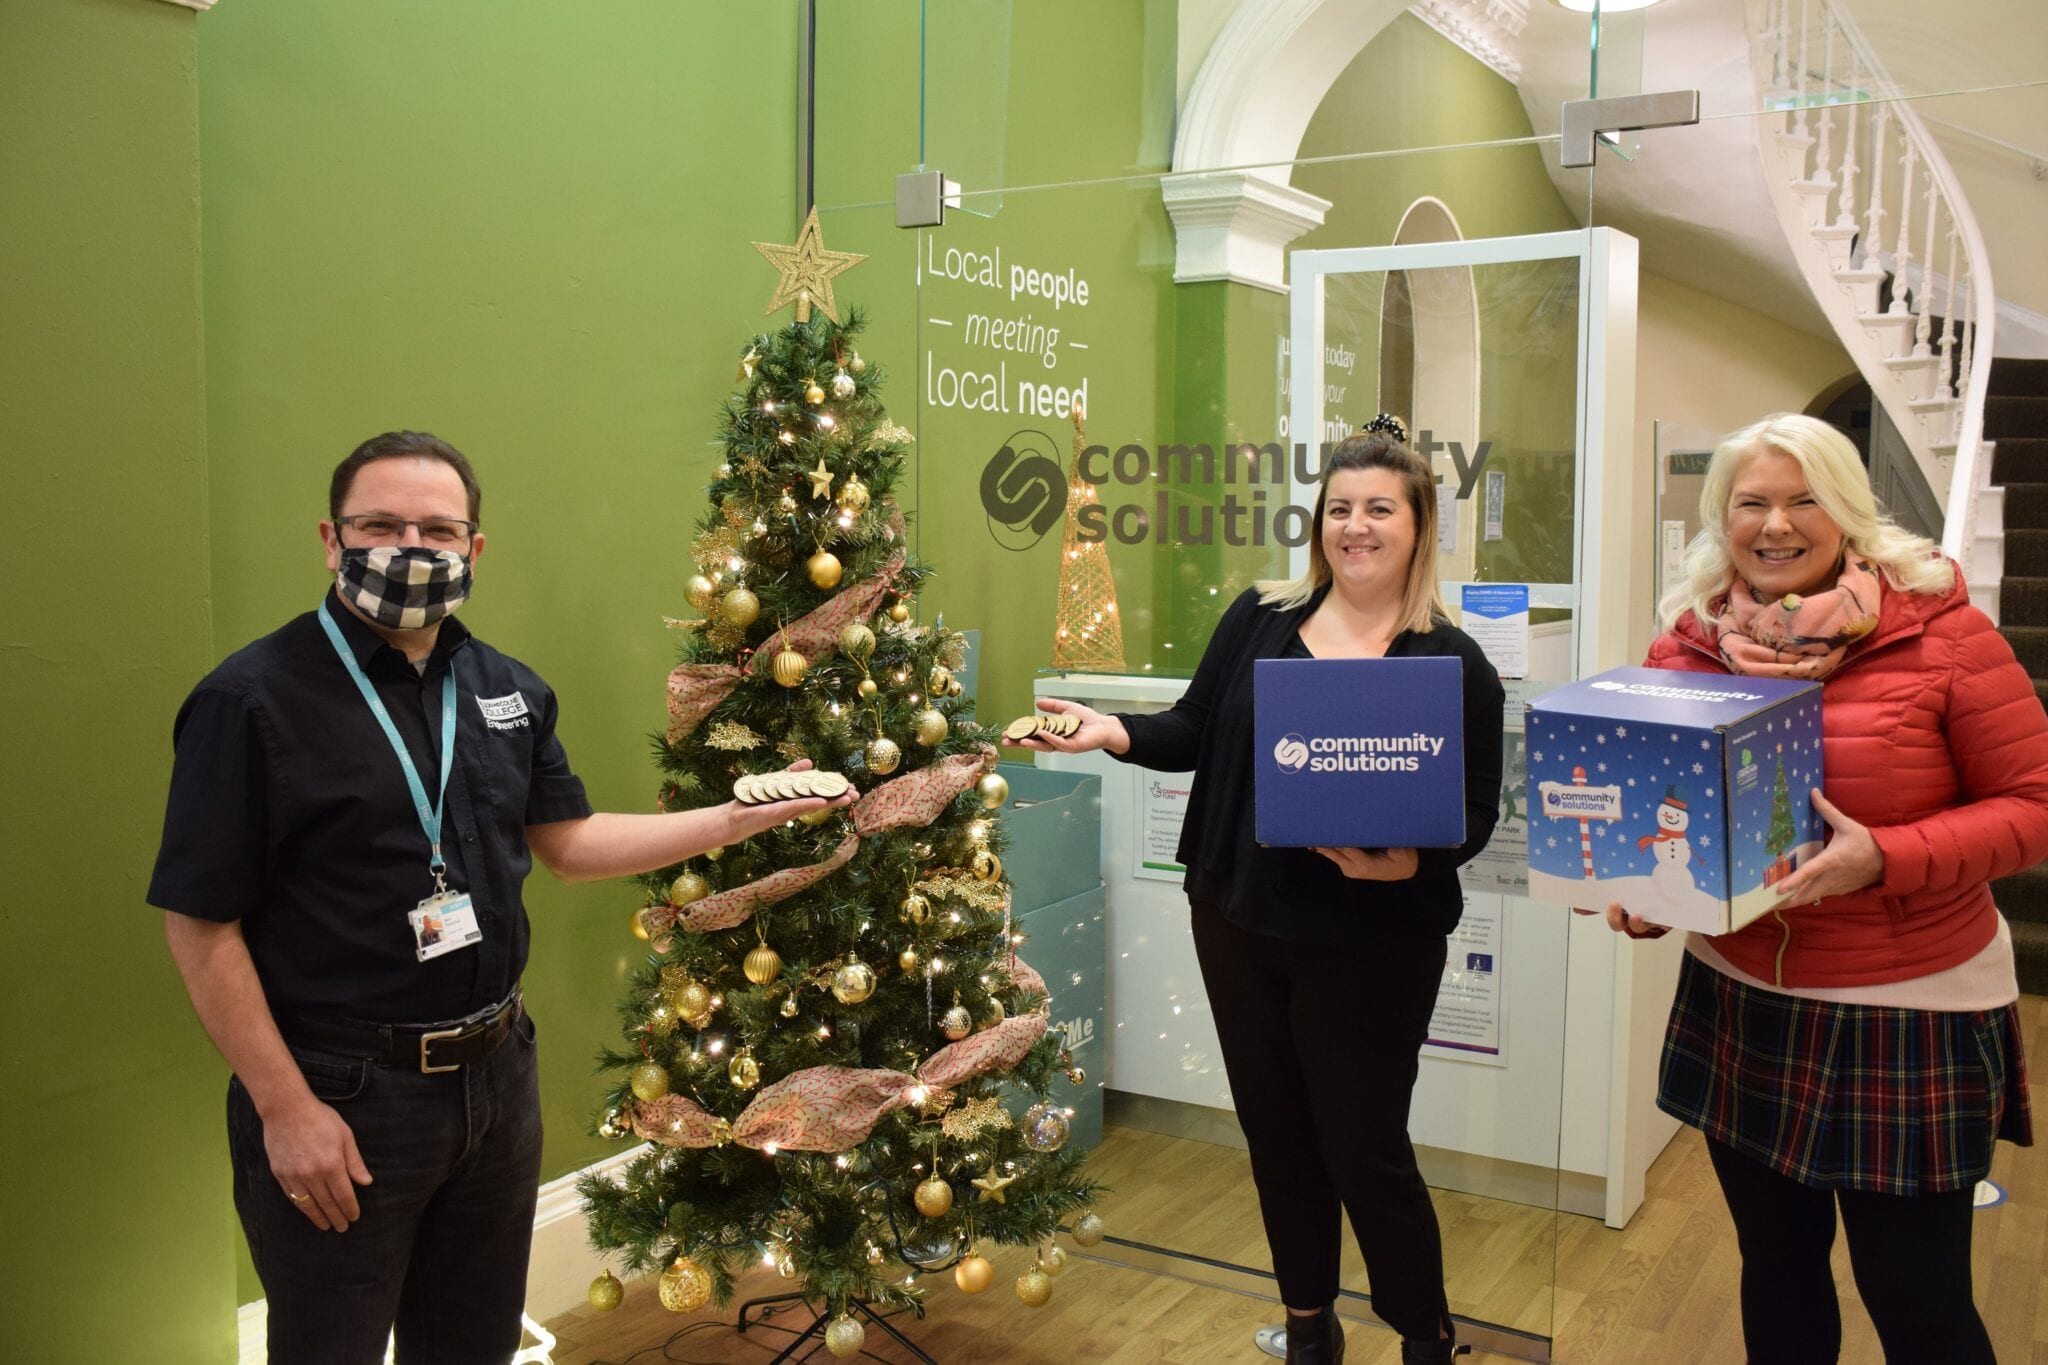 College Group teams up with Community Solutions to deliver festive cheer